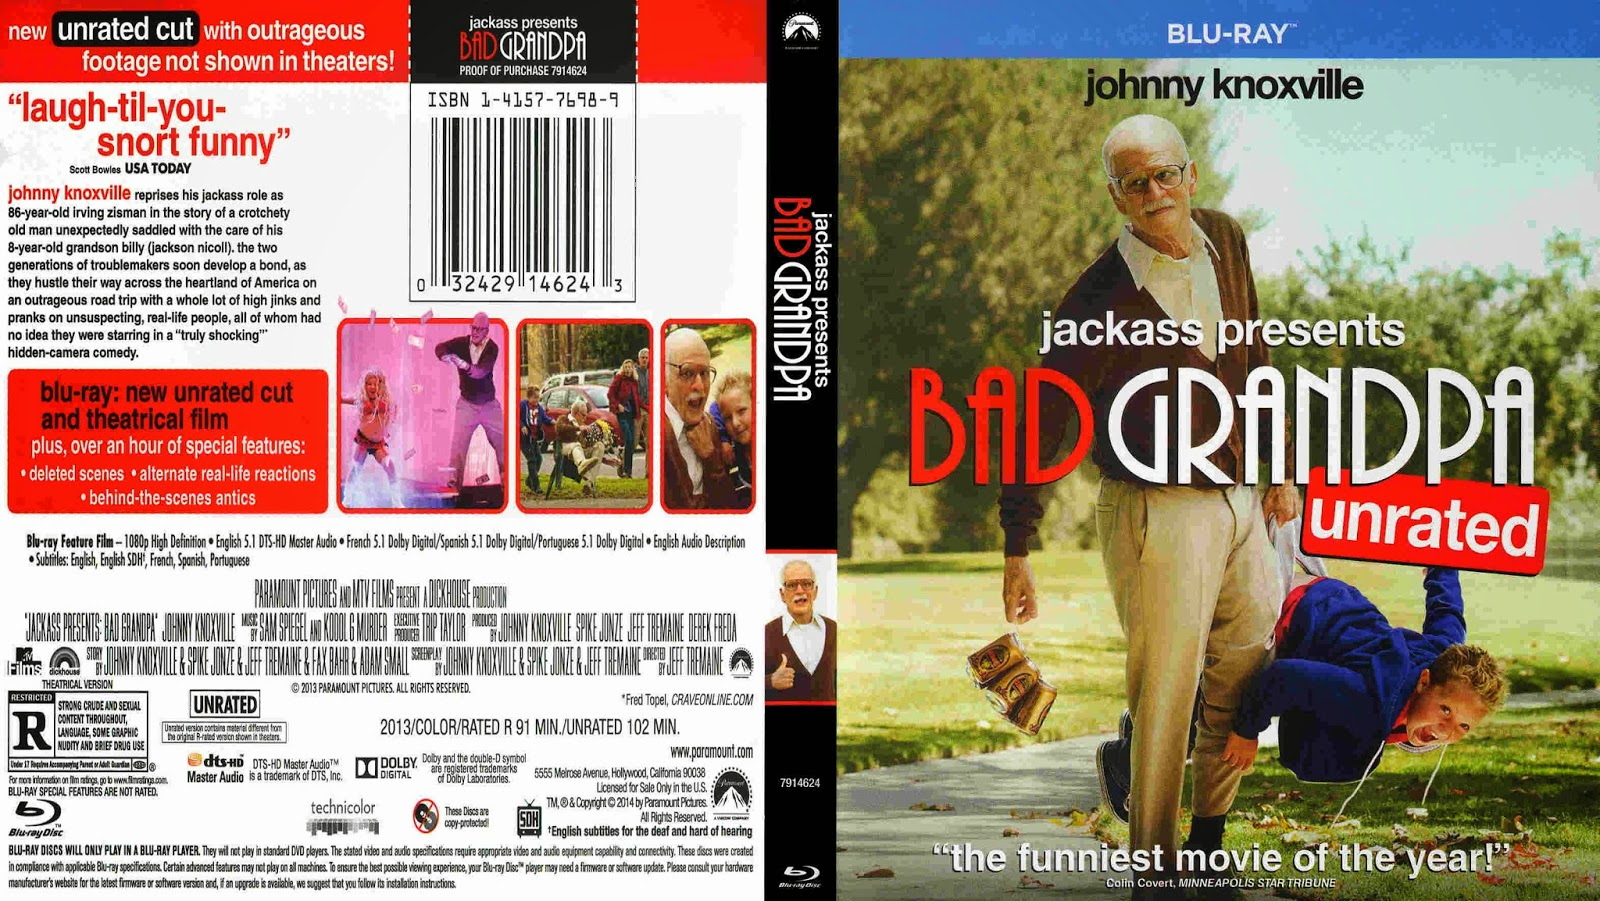 Jackass Presents Bad Grandpa  2013  - Cover Blu-Ray MovieBad Grandpa Dvd Cover